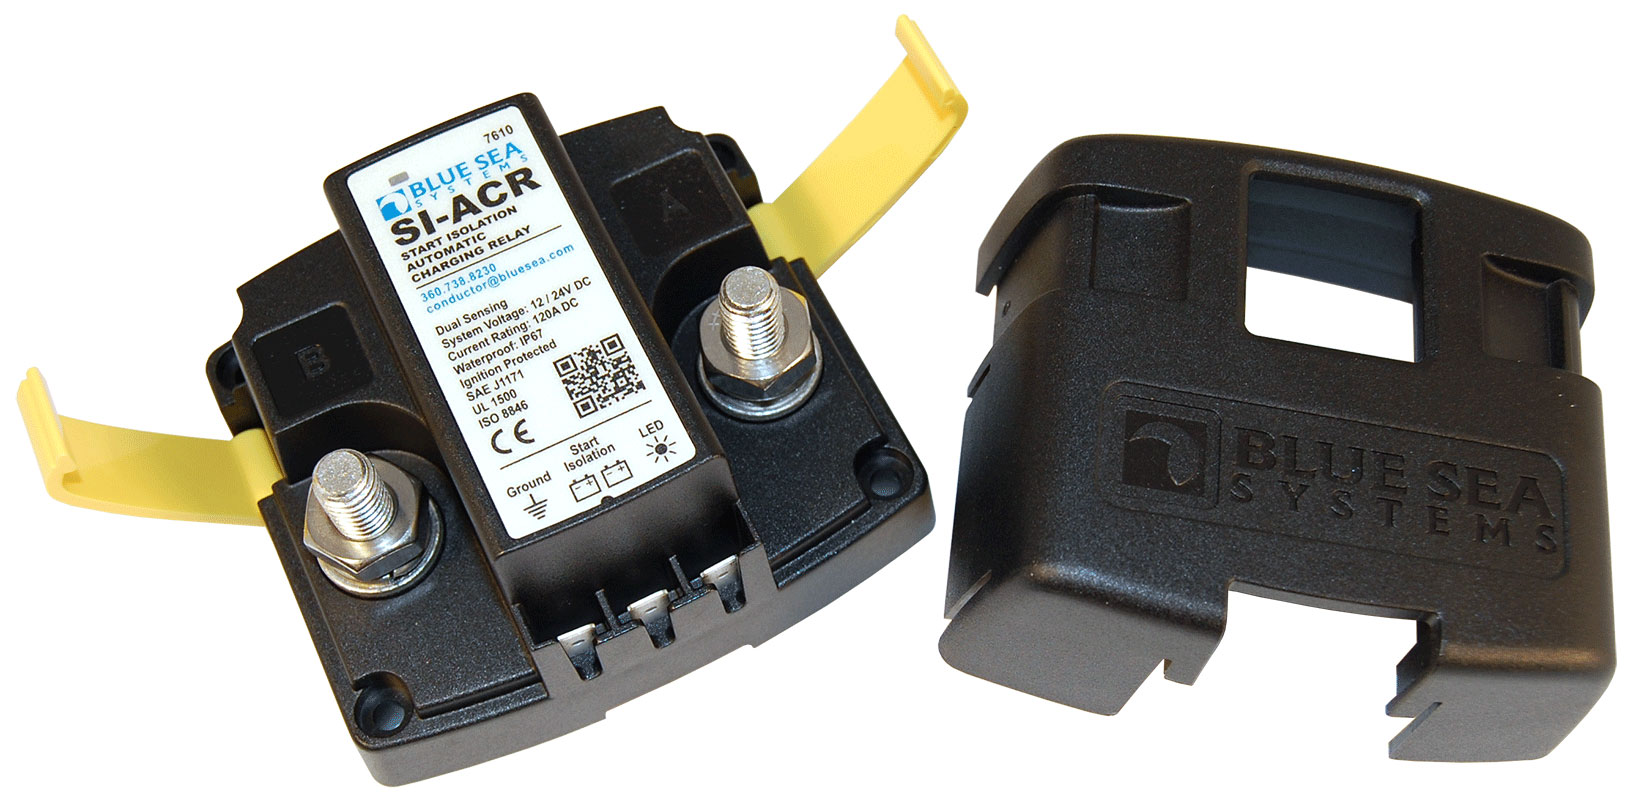 SI-ACR Automatic Charging Relay - 12/24V DC 120A - Blue Sea Systems